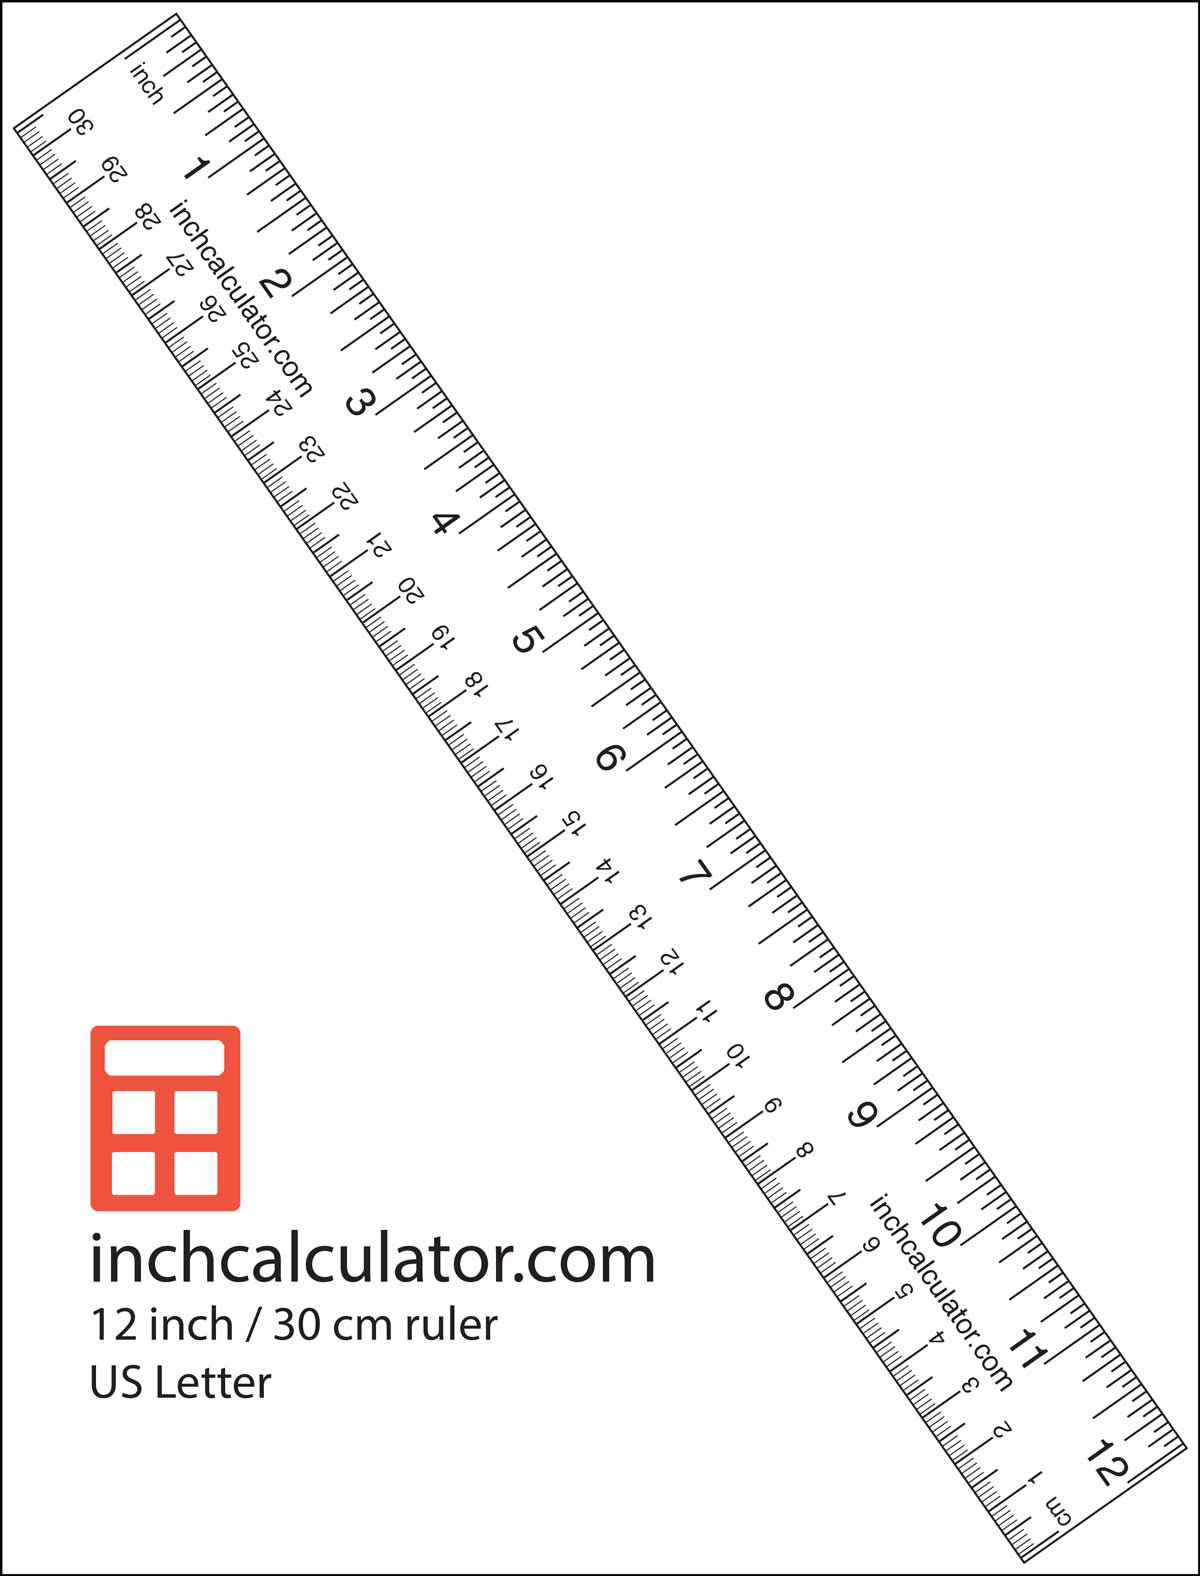 graphic relating to Ruler Actual Size Printable named Printable Rulers - Cost-free Downloadable 12\